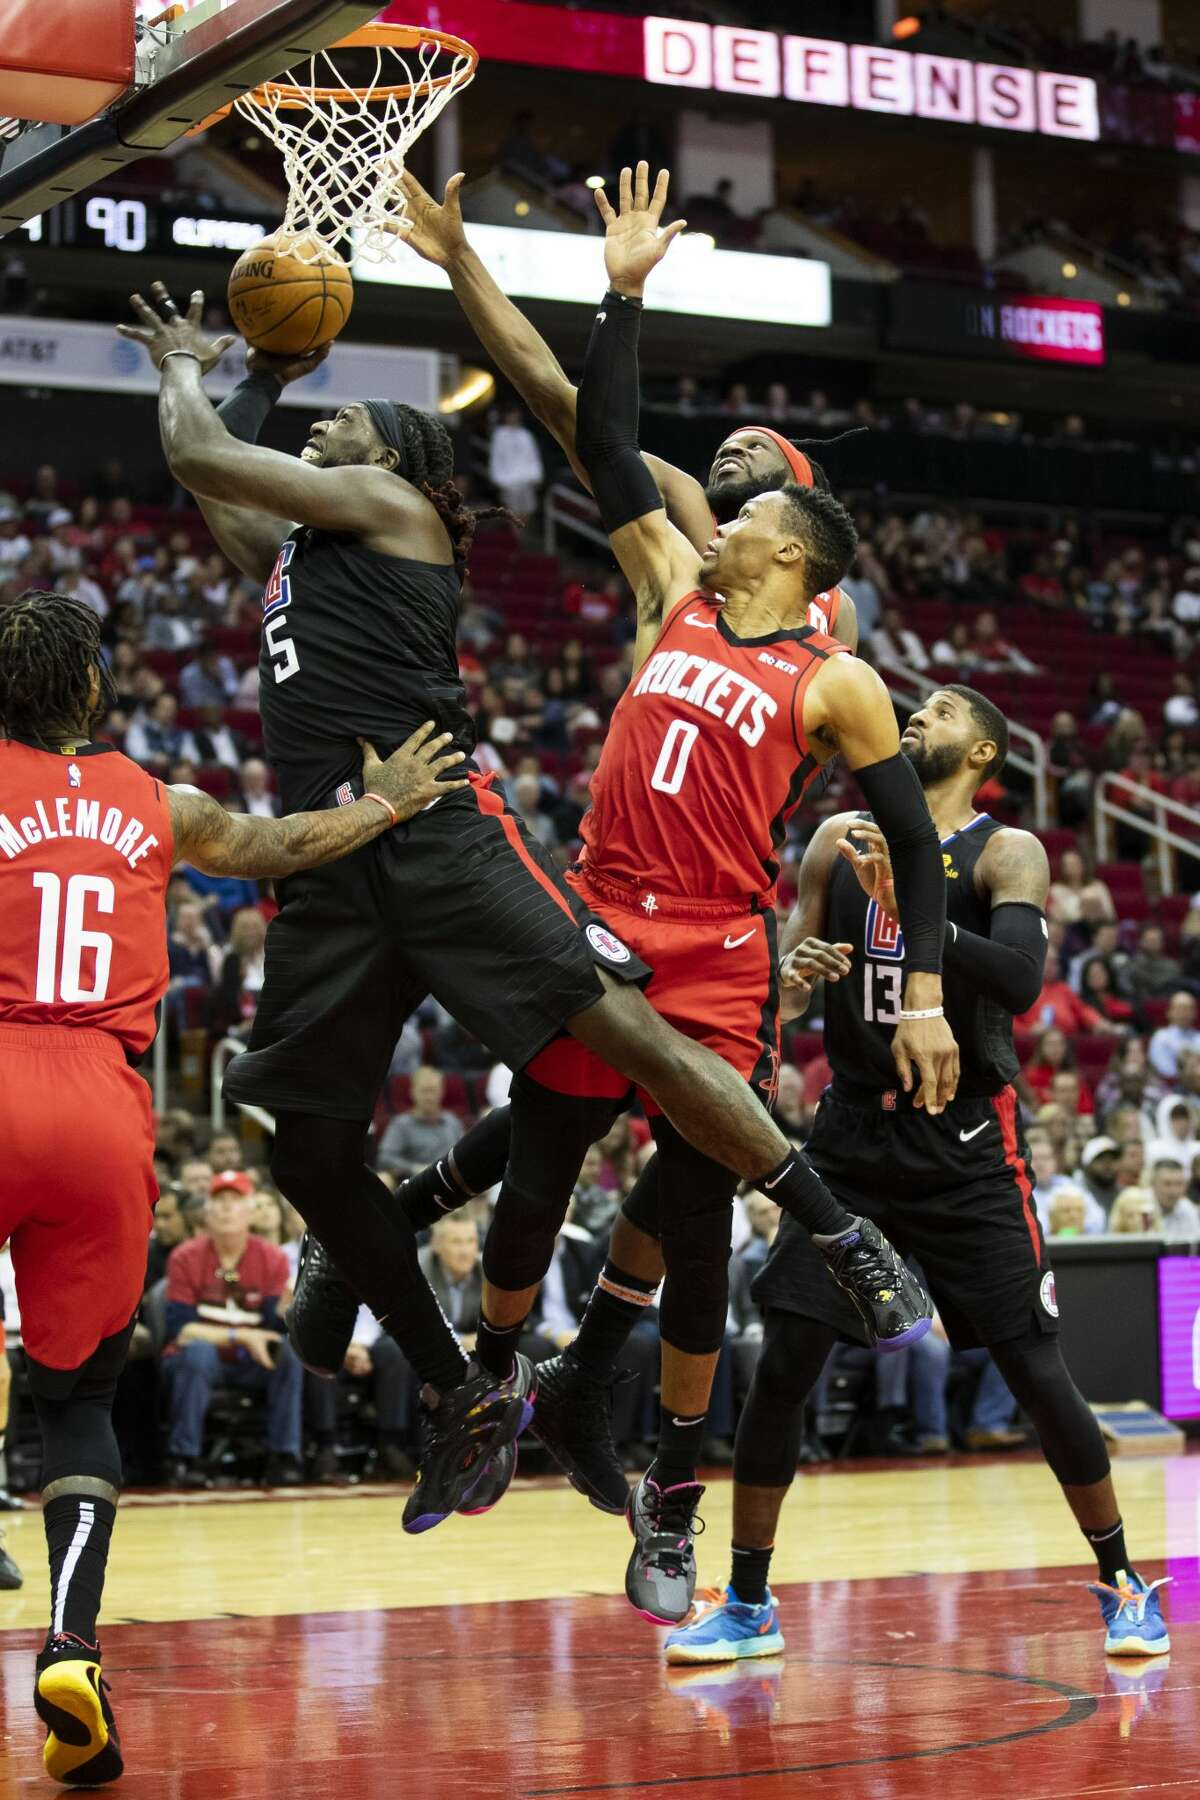 LA Clippers forward Montrezl Harrell (5) lay up successfully under the pressure of Houston Rockets guard Ben McLemore (16) and guard Russell Westbrook (0) during the second half of the game at the Toyota Center on Thursday, March 5, 2020, in Houston. The LA Clippers won 120-105.